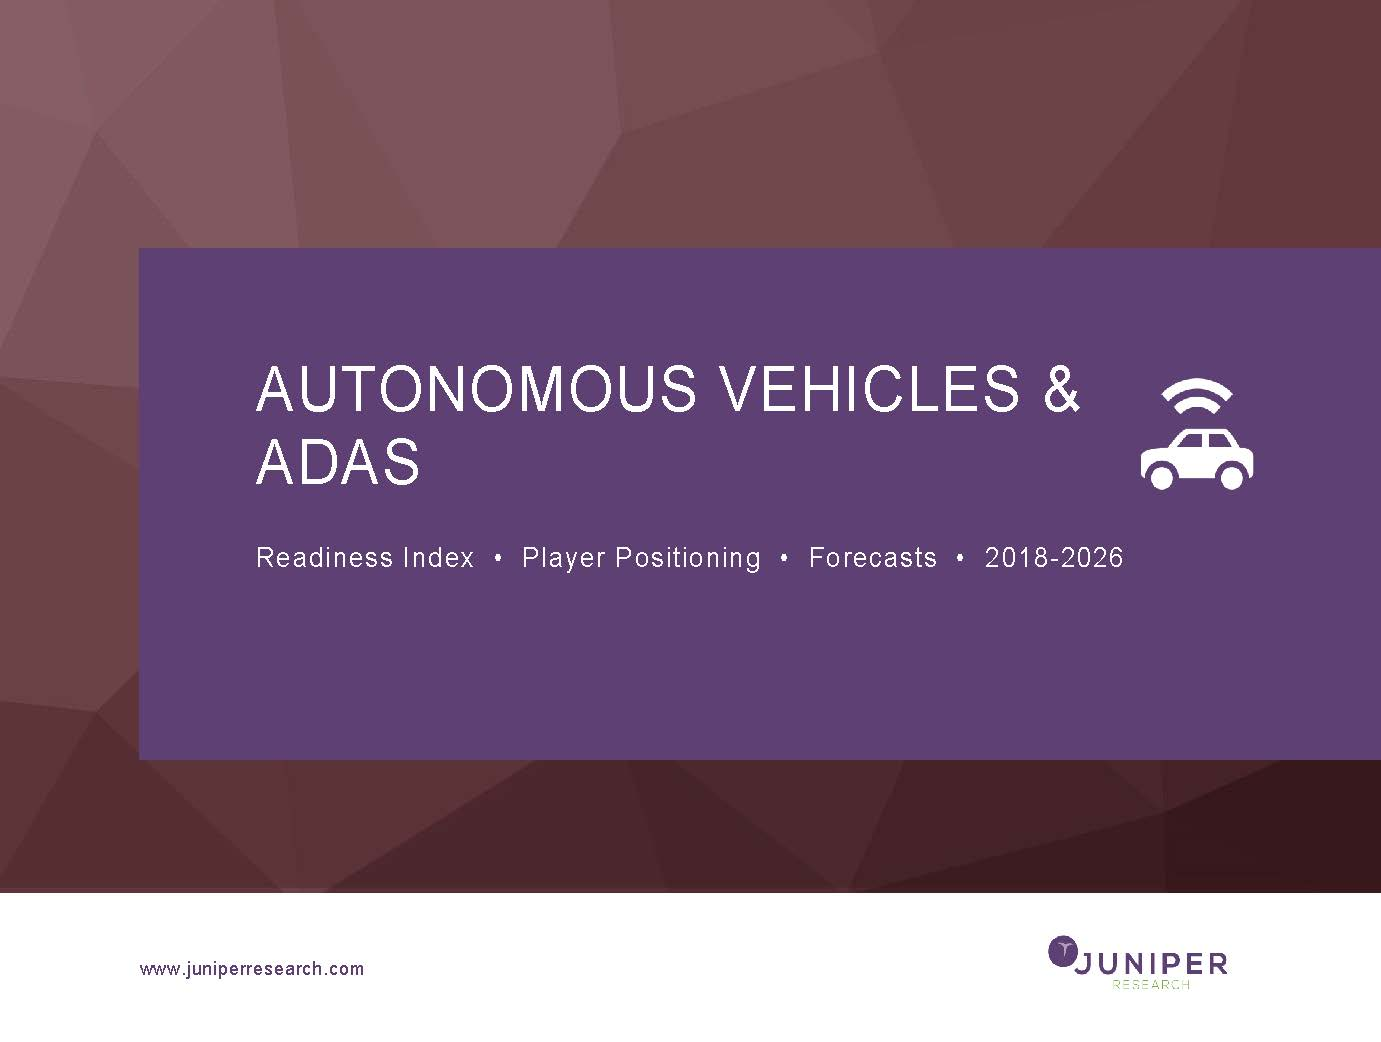 Autonomous Vehicles & ADAS